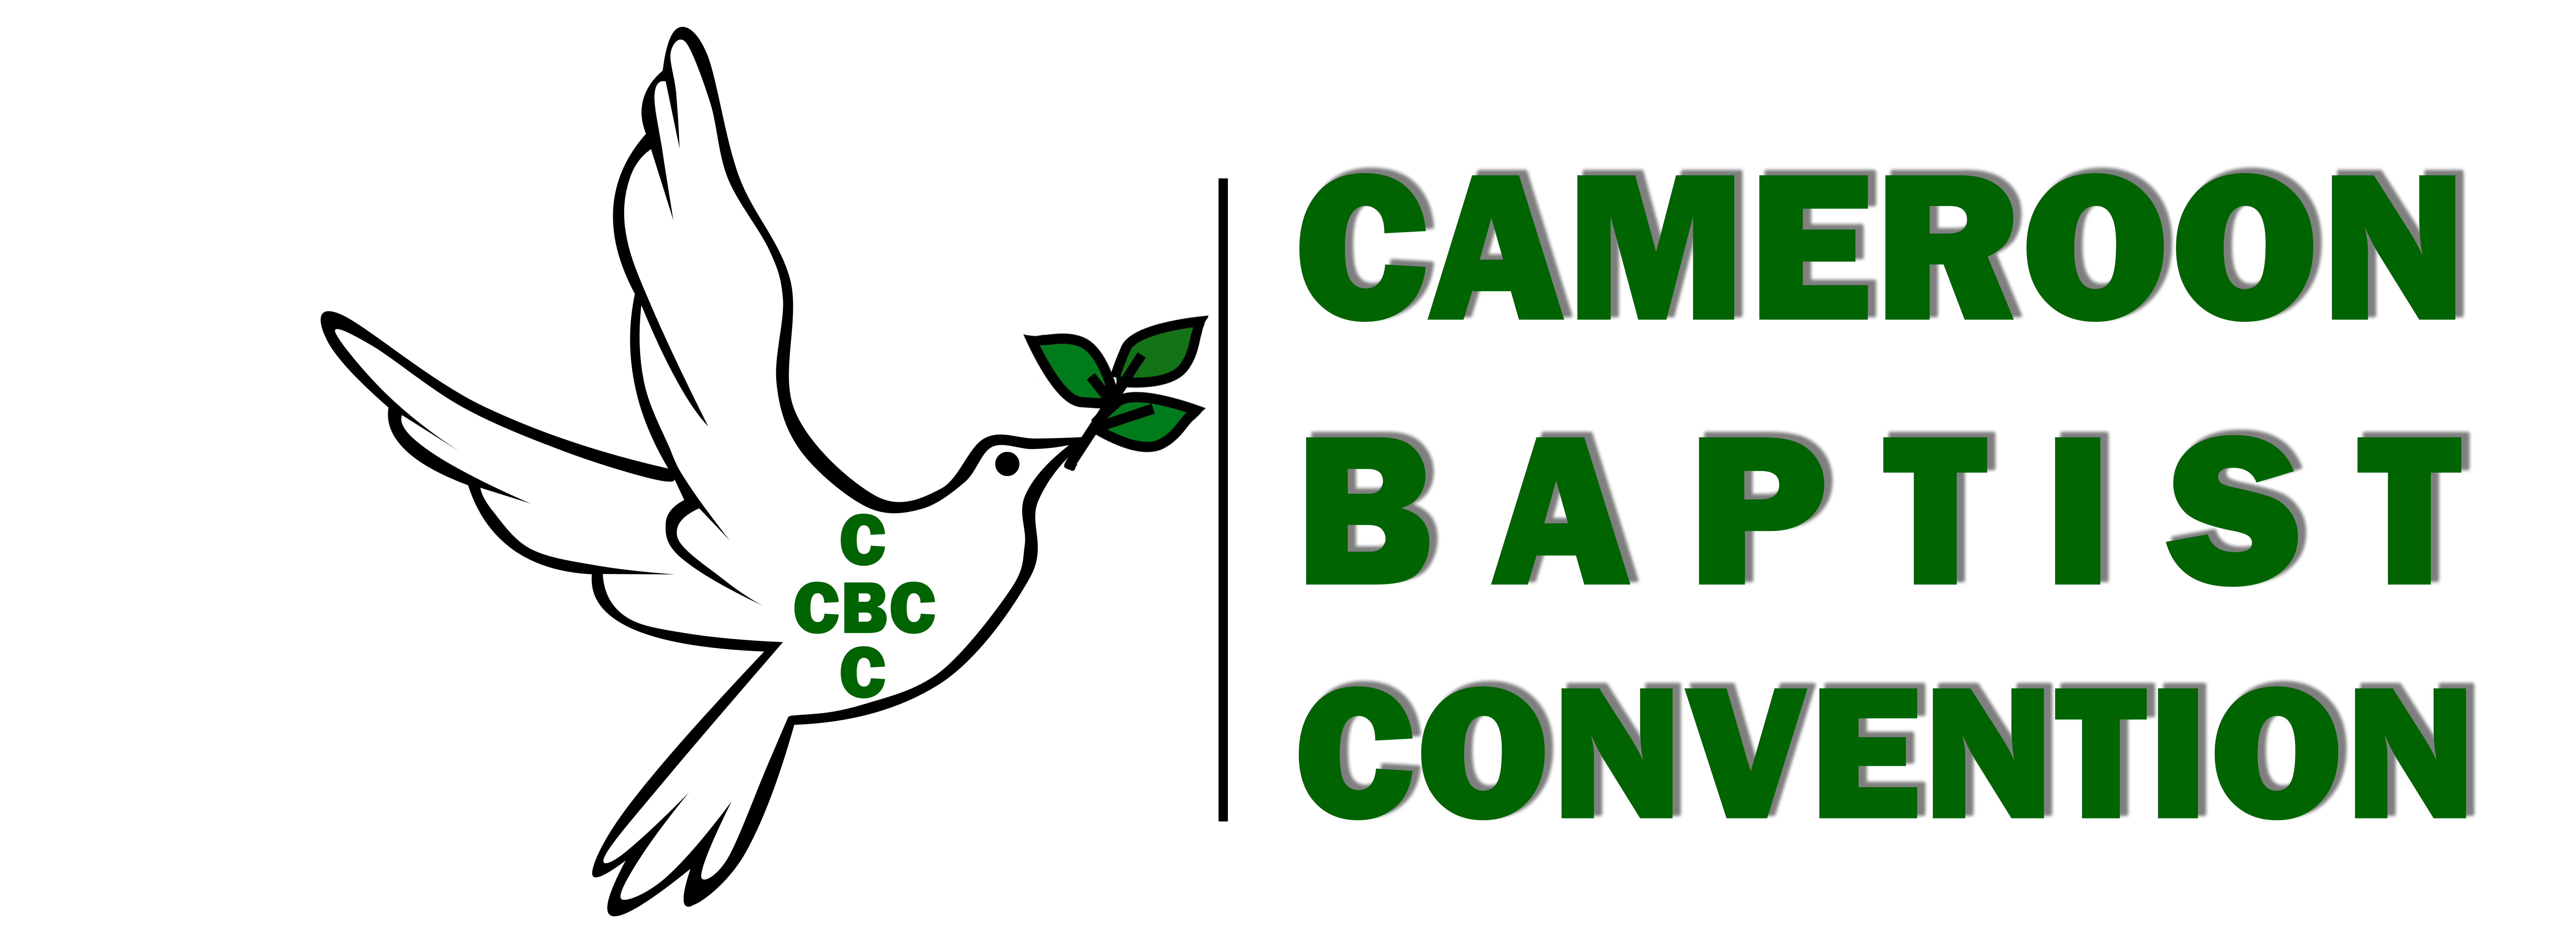 Cameroon Baptist Convention